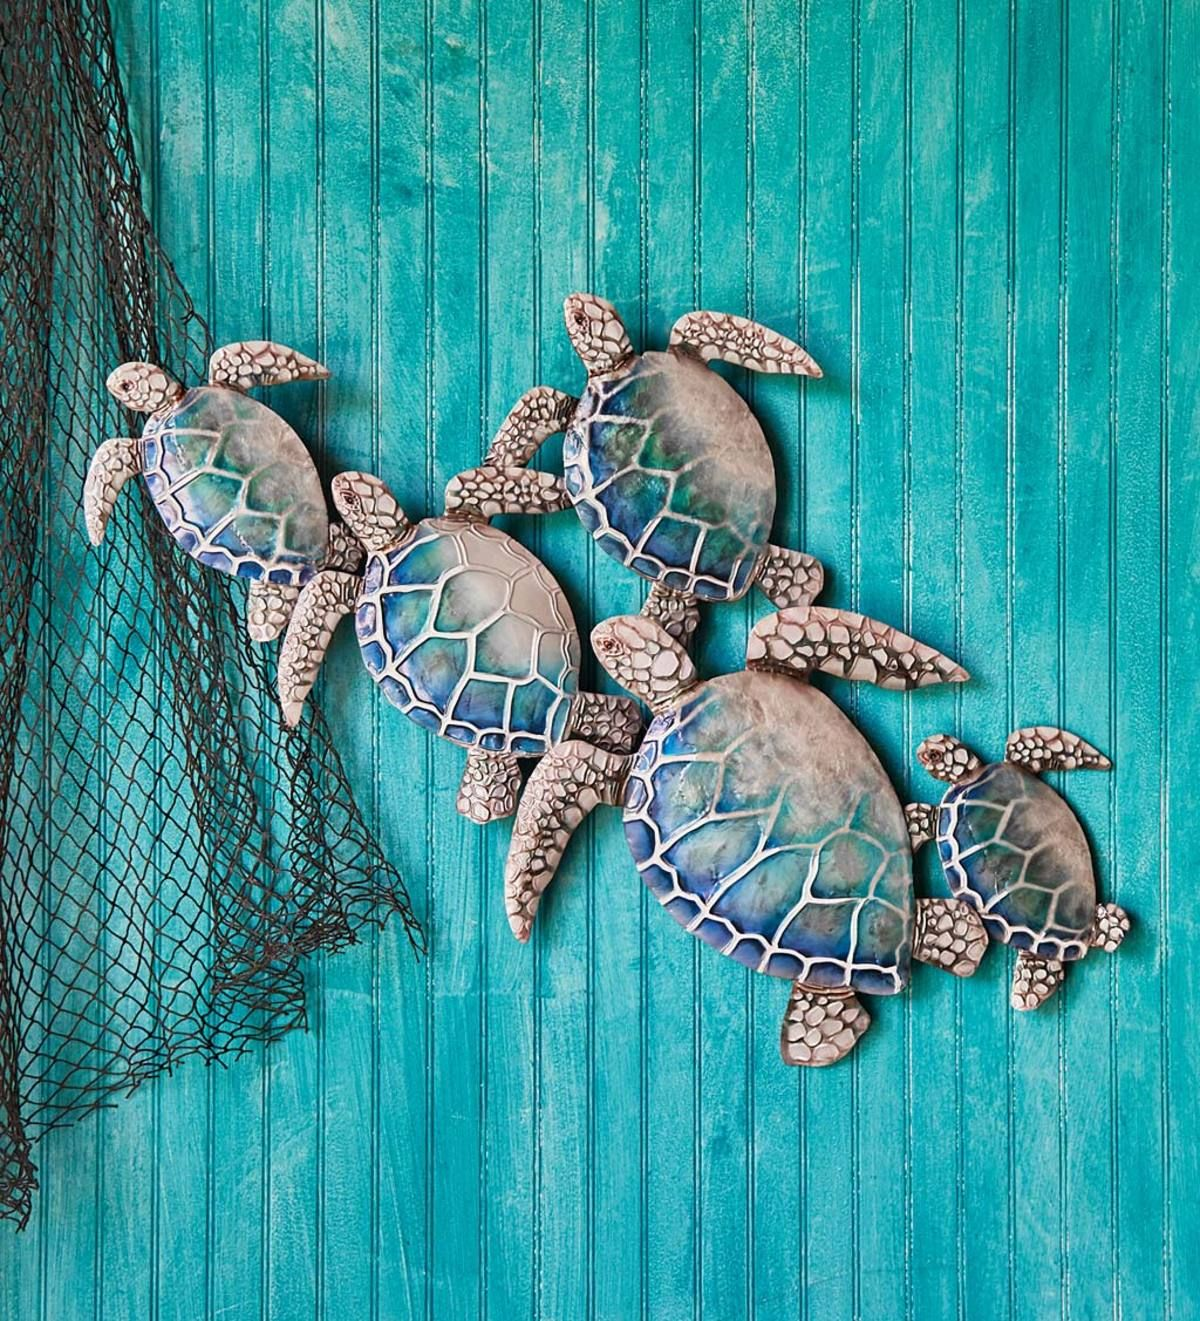 This Handcrafted Metal And Capiz Sea Turtles Wall Art Is A Stunning Recreation Of A Group Of Sea Tur Turtle Wall Art Sea Turtle Wall Art Outdoor Metal Wall Art